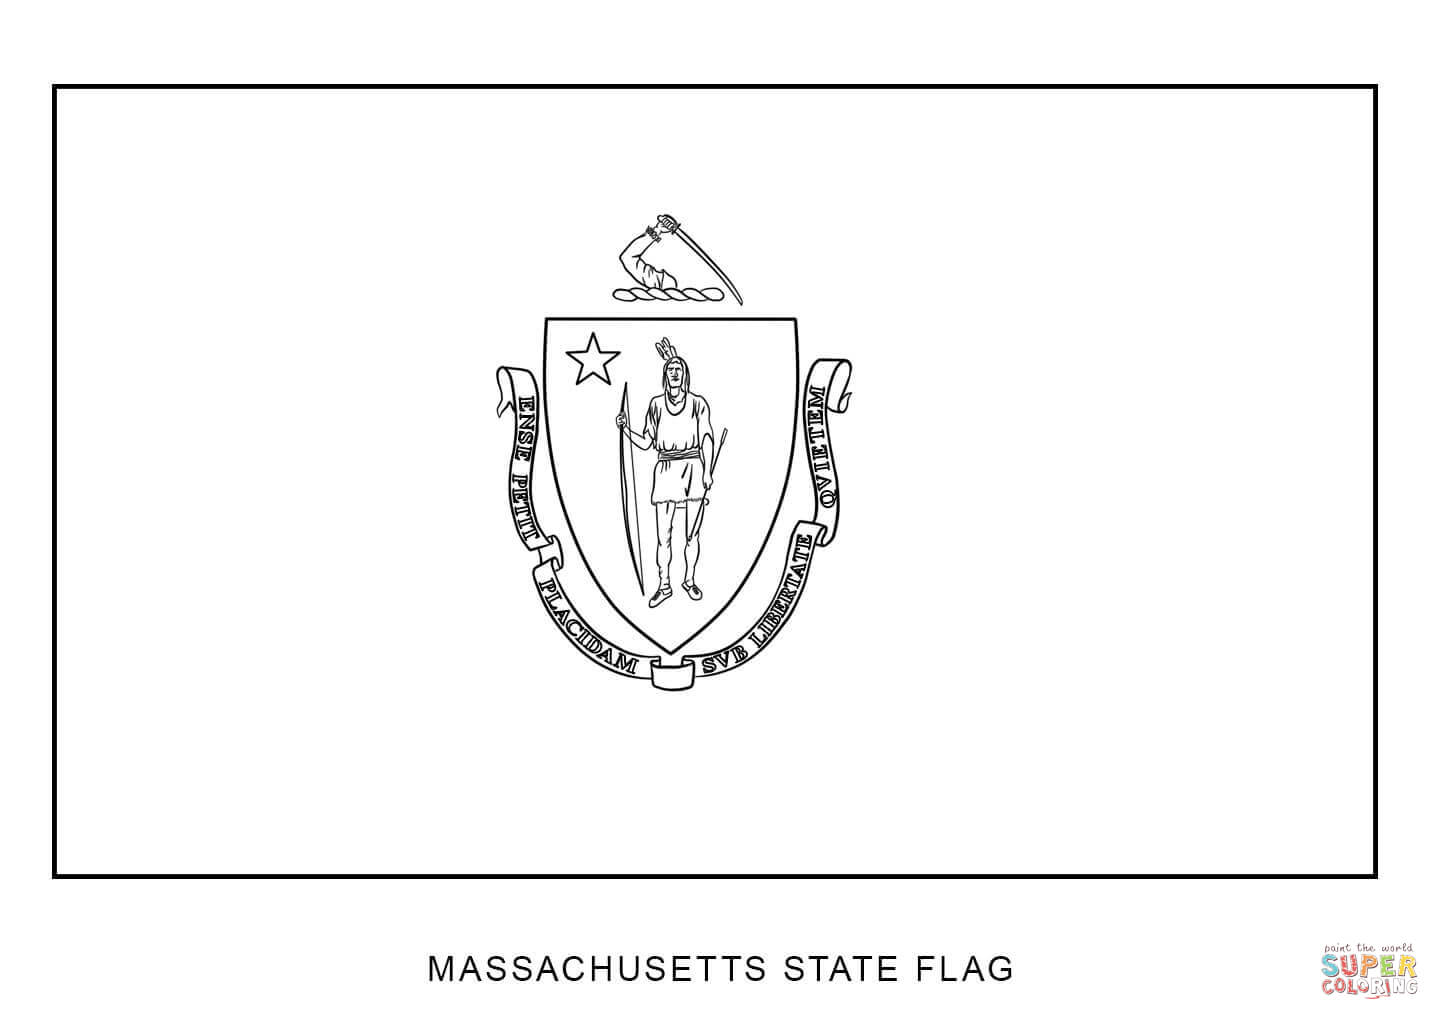 massachusetts state flag coloring page massachusetts state flag coloring page color luna page state flag coloring massachusetts